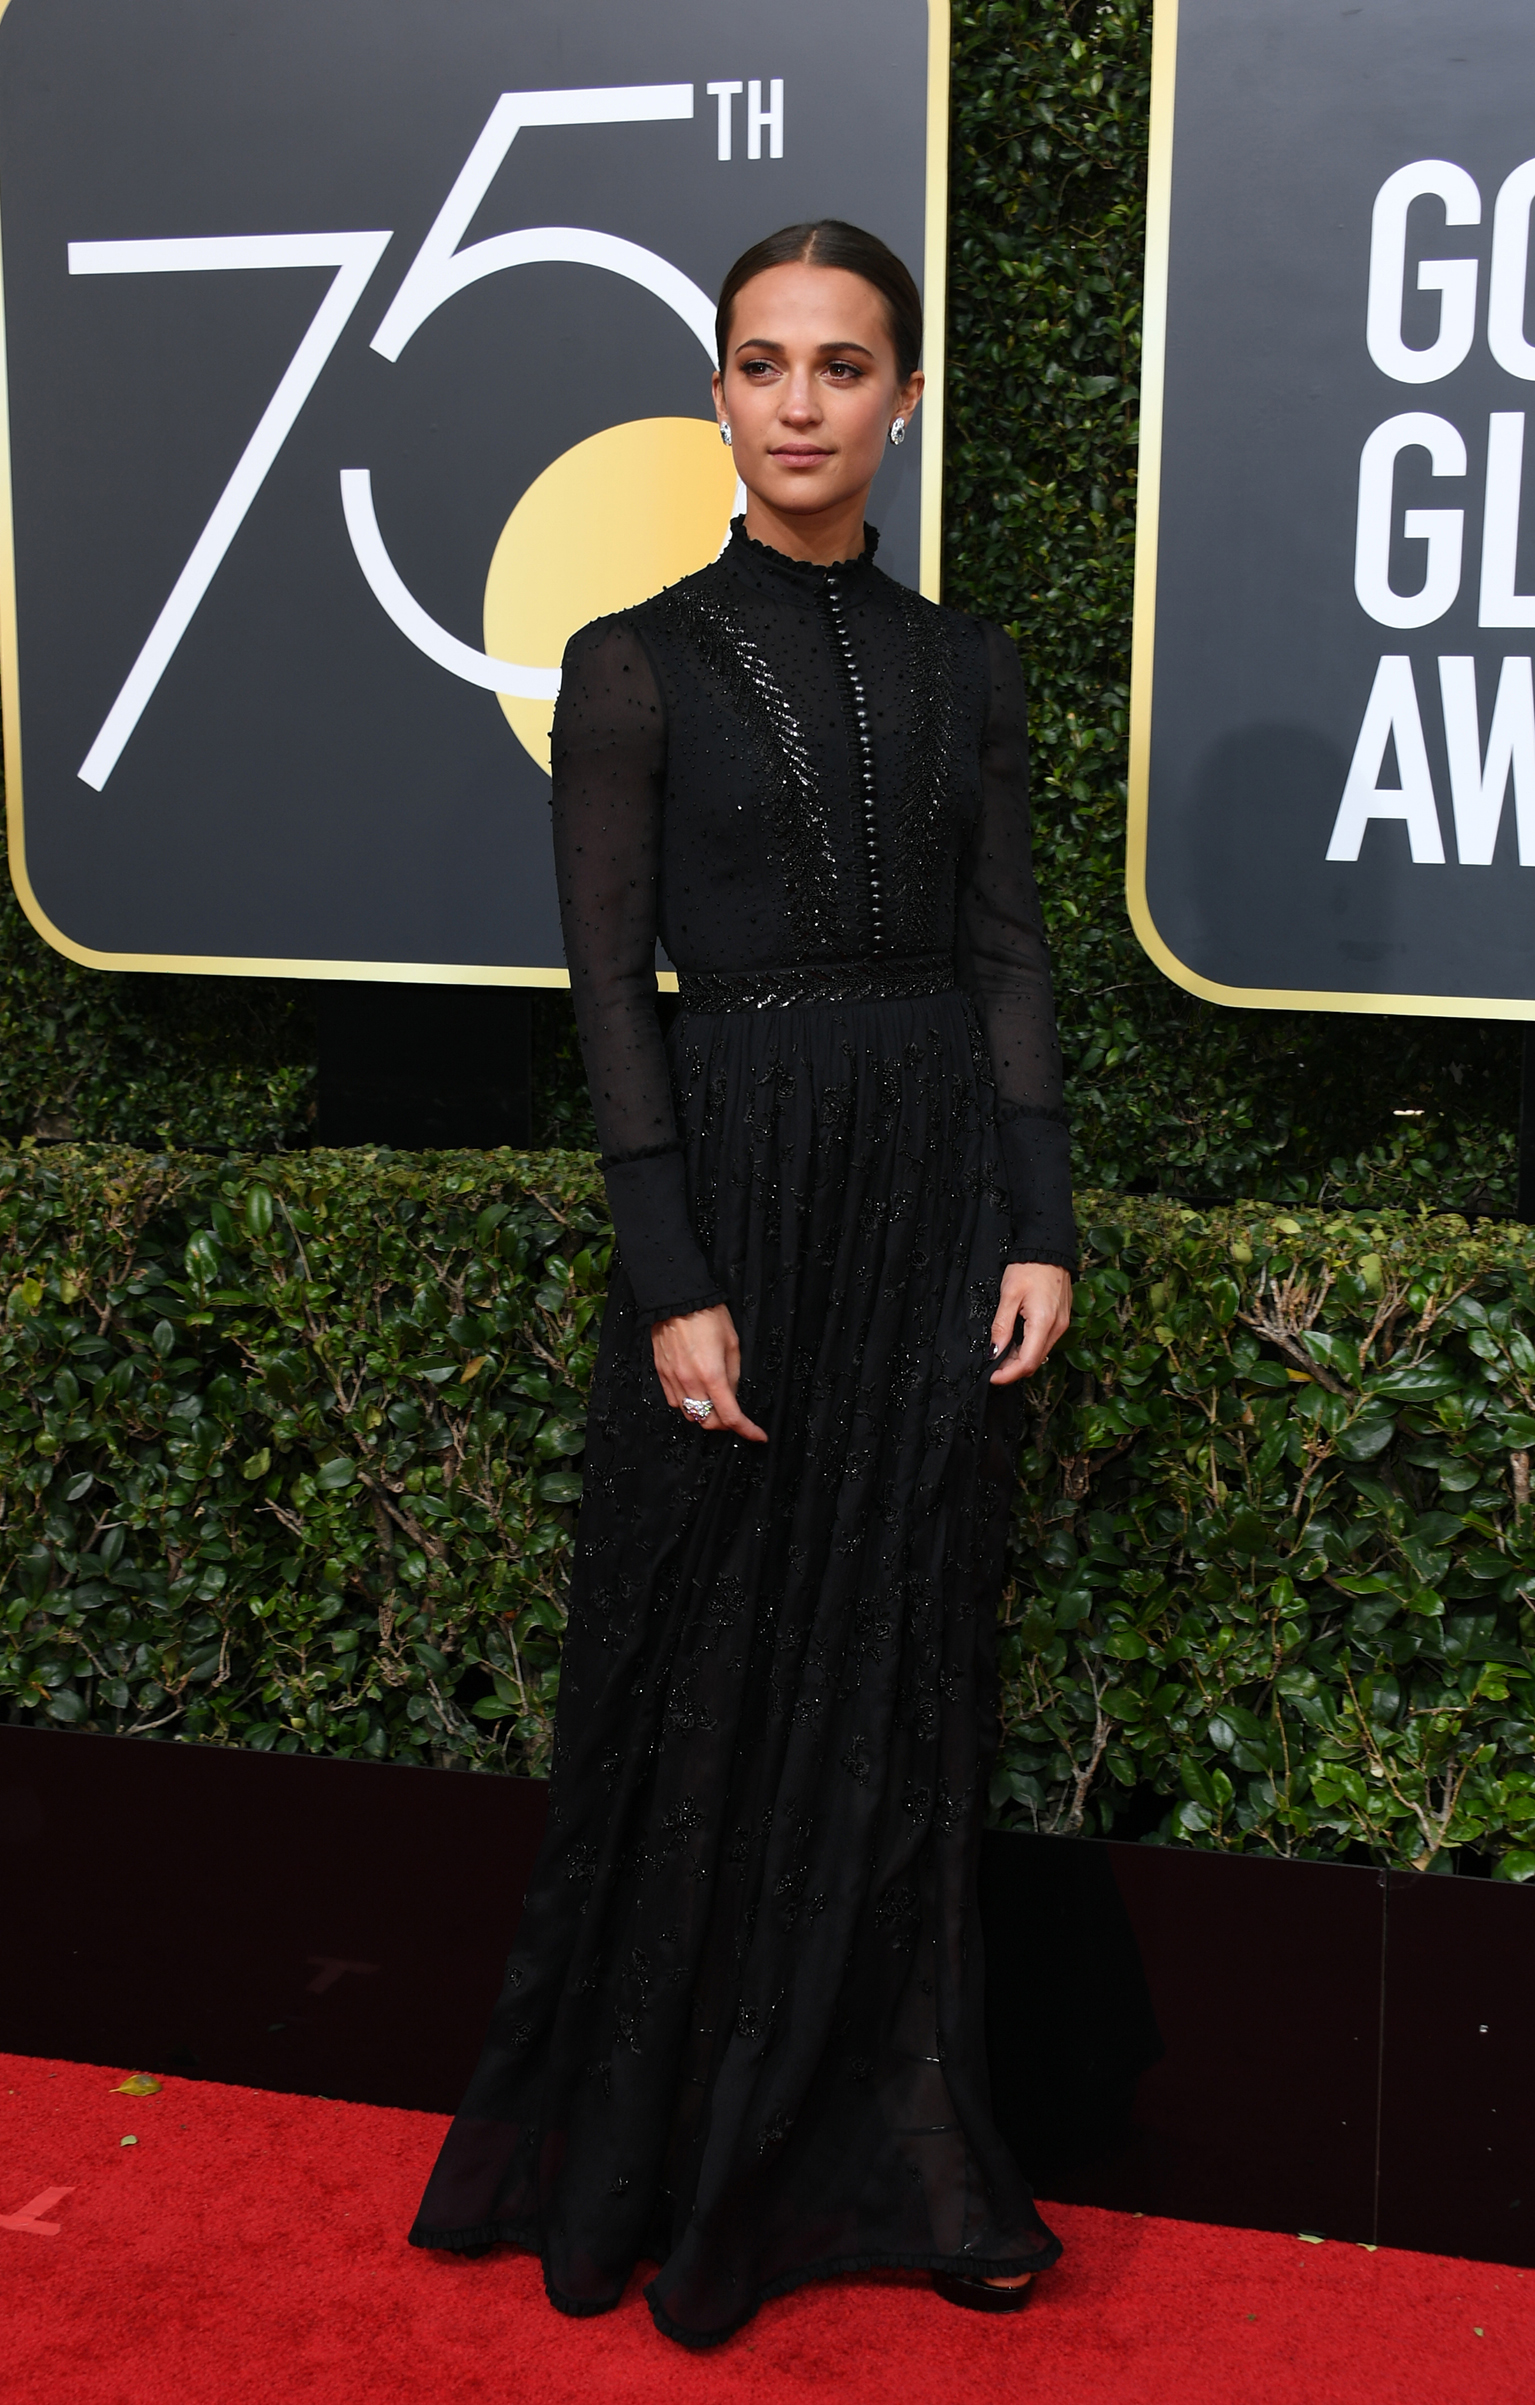 Swedish actress Alicia Vikander arrives for the 75th Golden Globe Awards on January 7, 2018, in Beverly Hills, California.